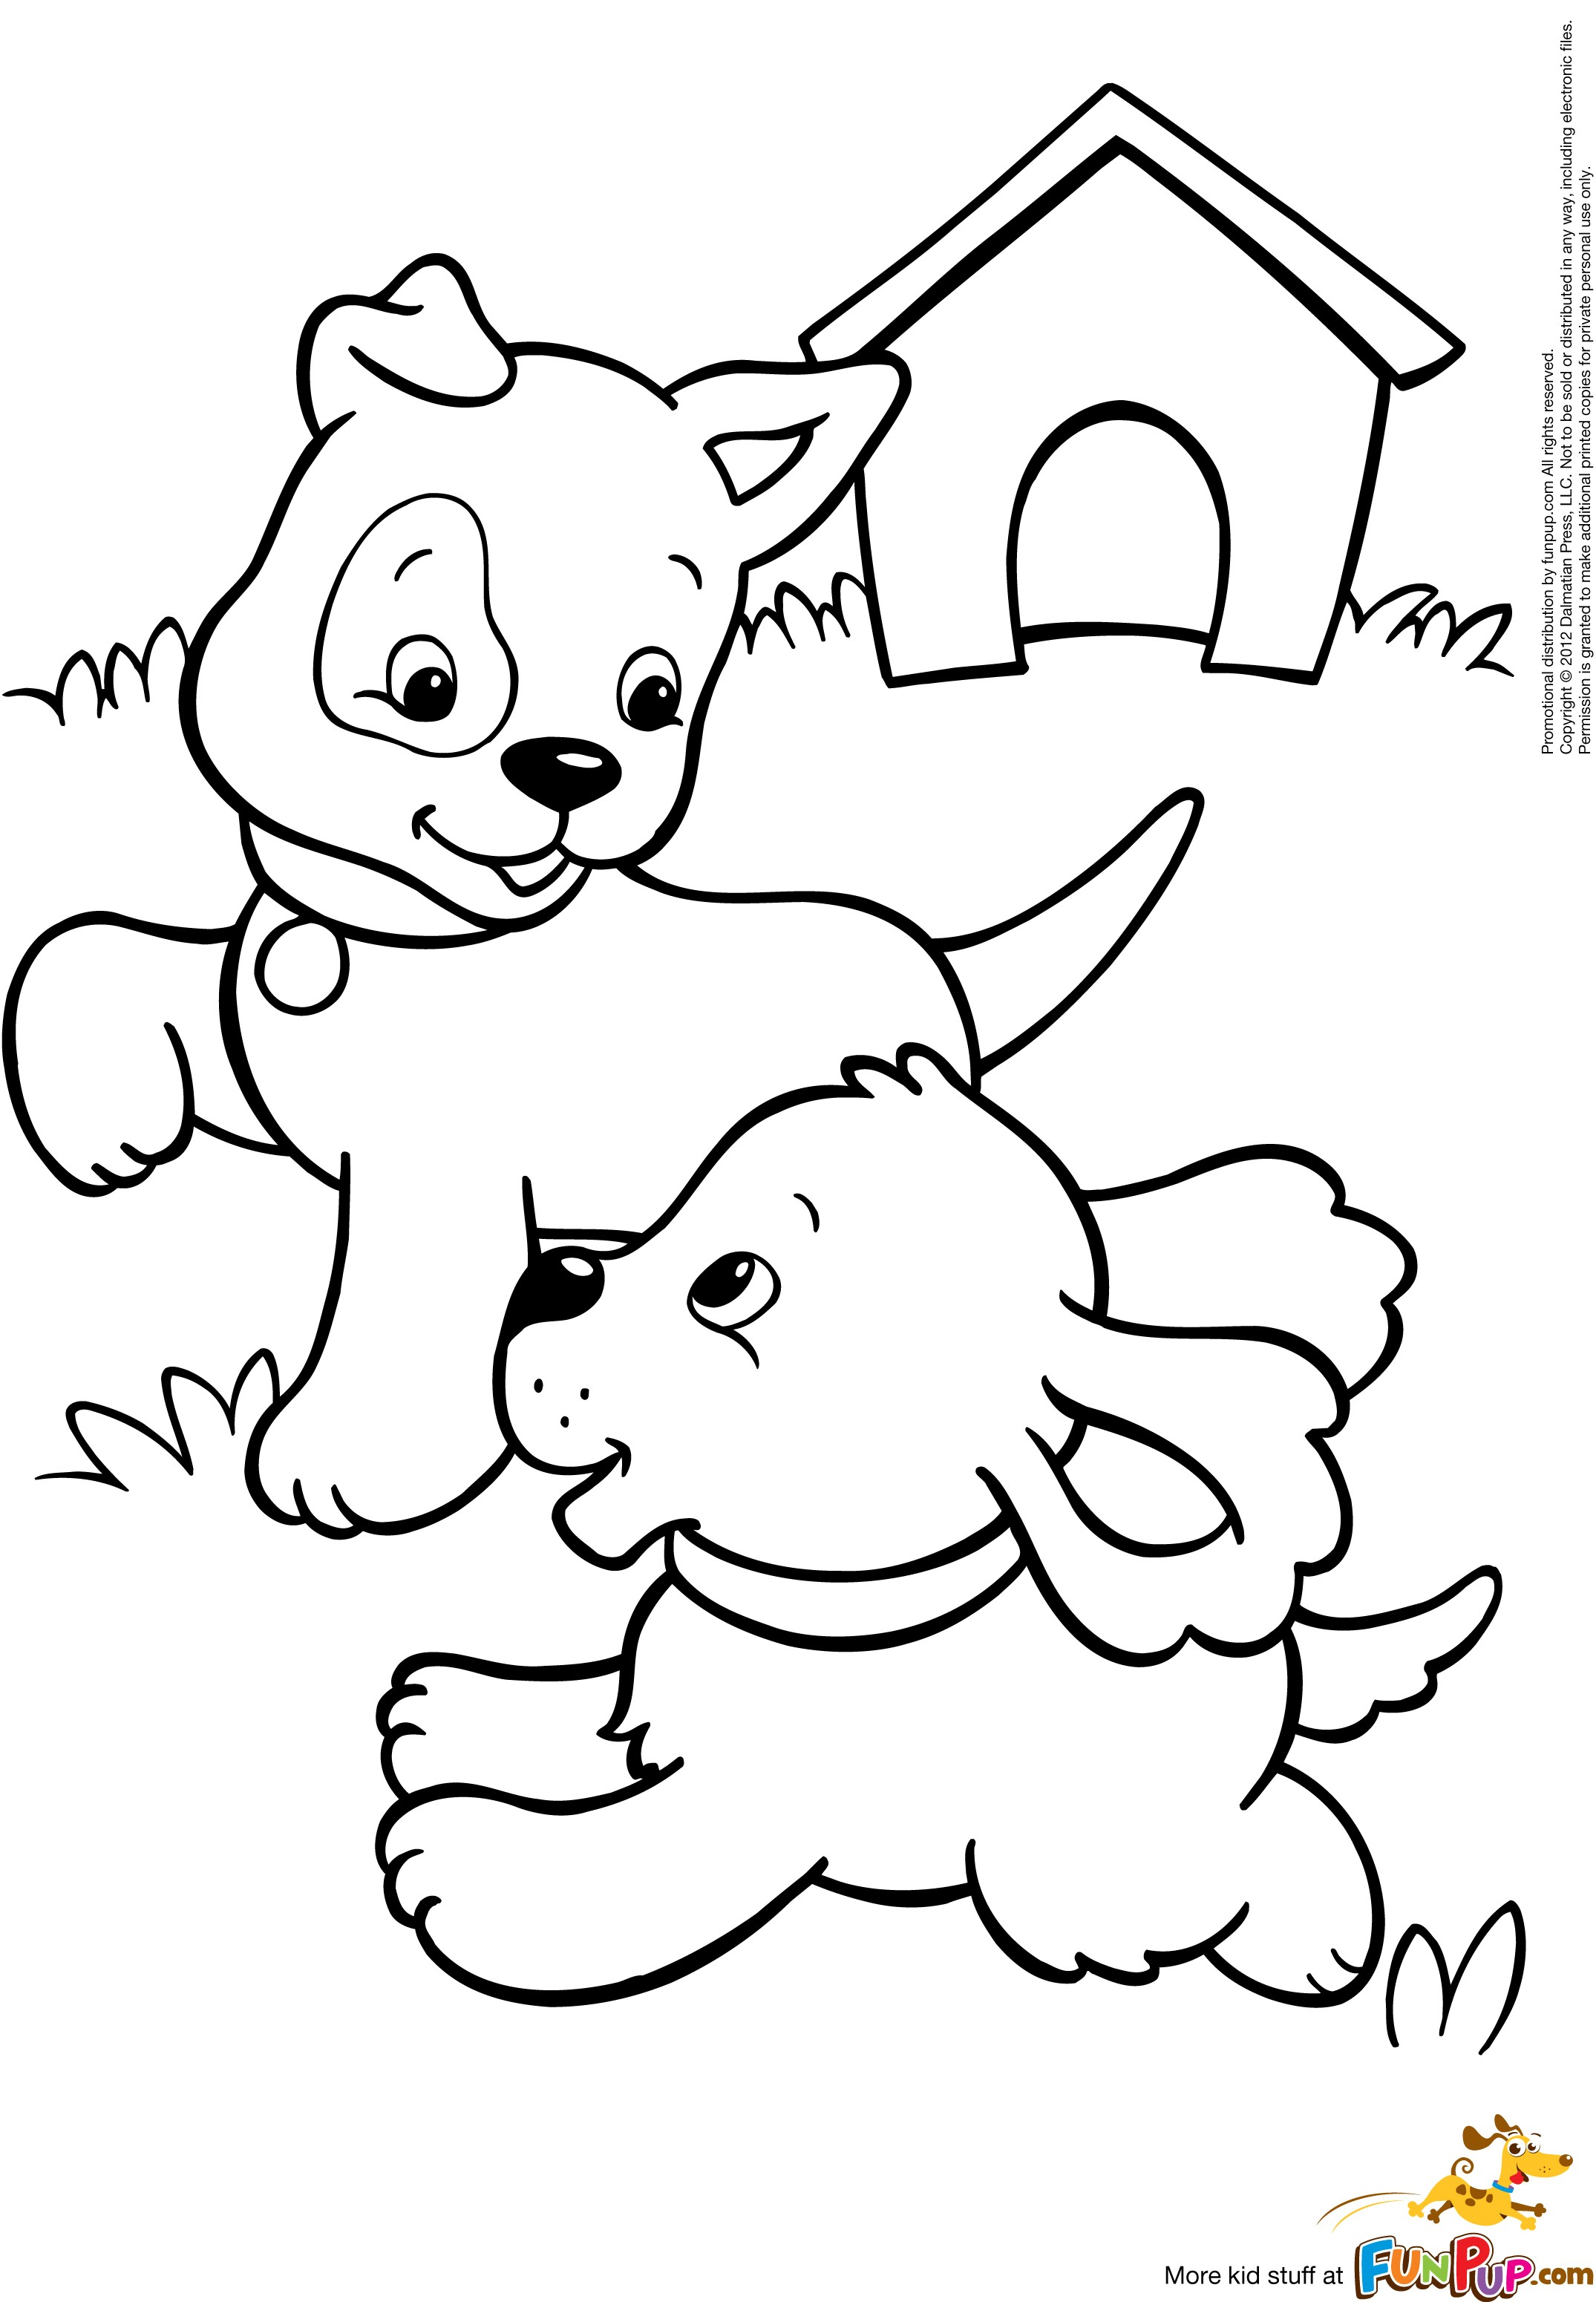 coloring pages of dogs printable free printable dogs and puppies coloring pages for kids dogs pages of printable coloring